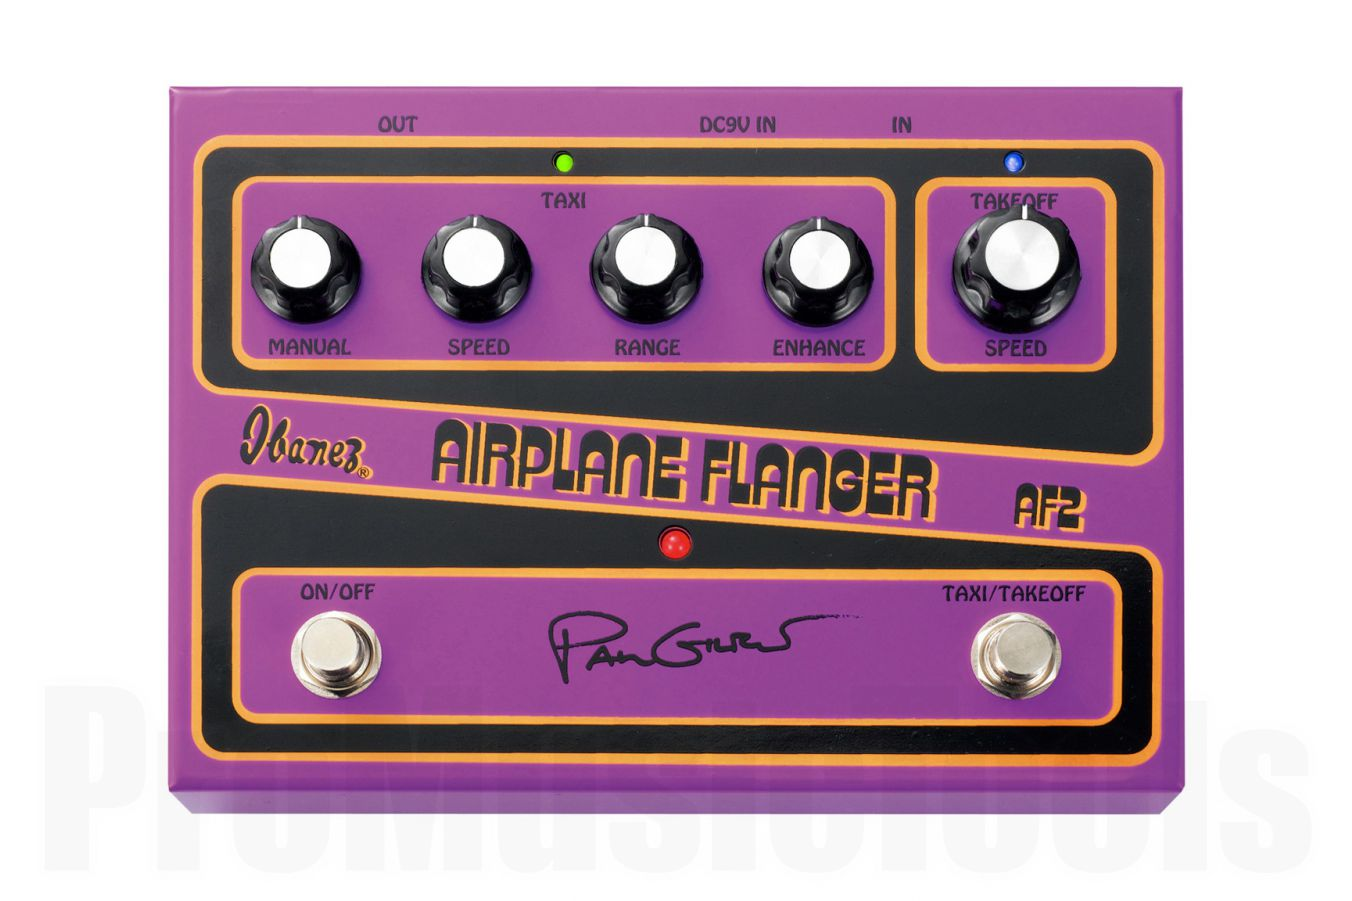 Ibanez AF2 Airplane Flanger Paul Gilbert Signature Pedal - demo